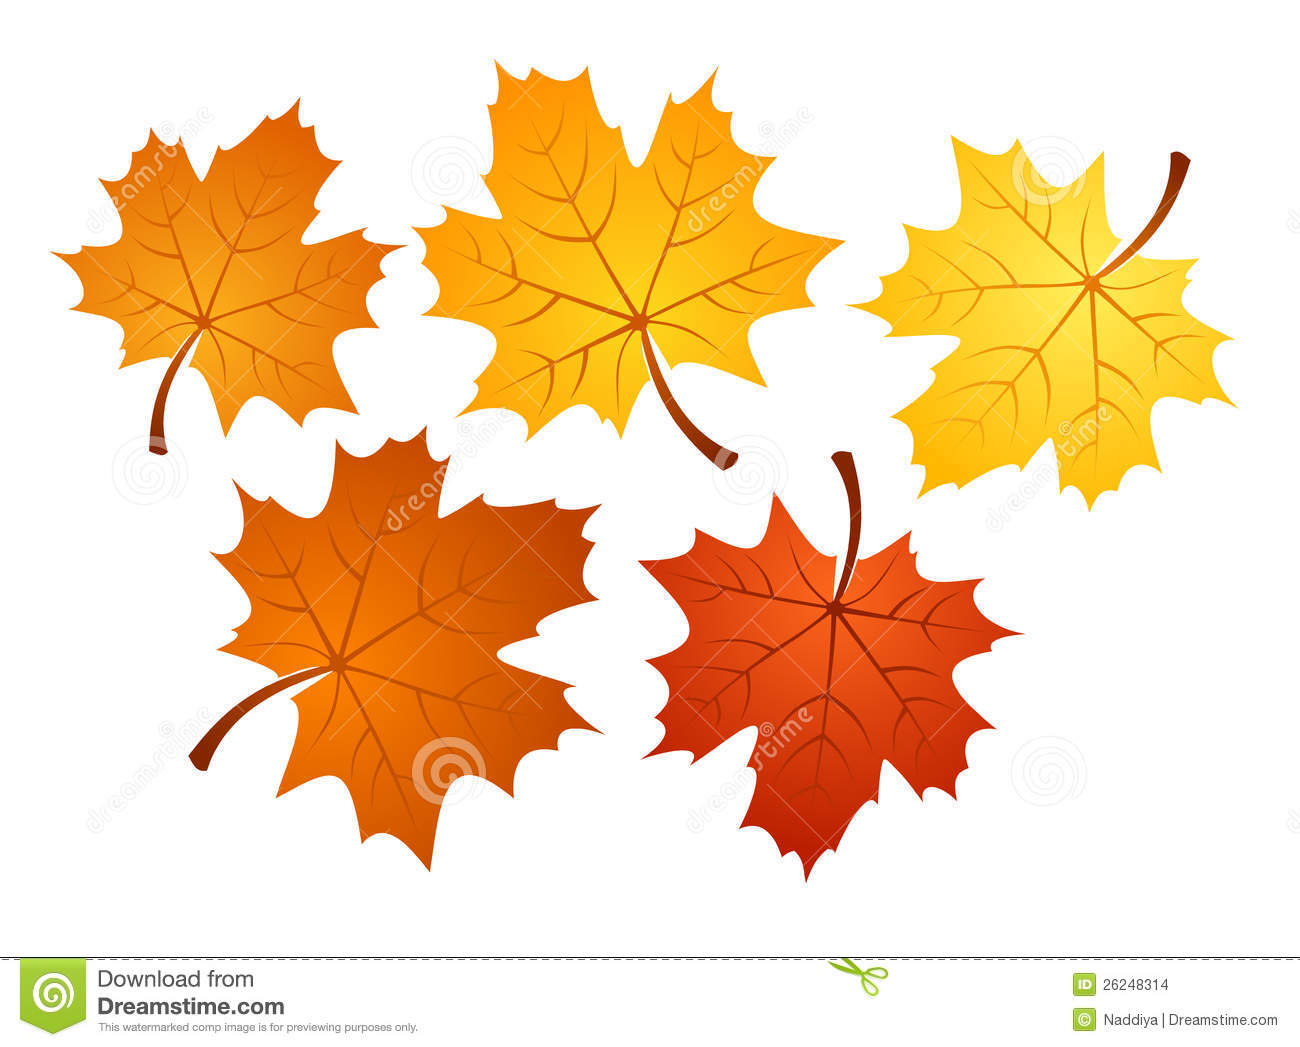 Fall Of The Leafe Wallpaper Folhas De Pl 225 Tano Do Outono De V 225 Rias Cores Illu Do Vetor